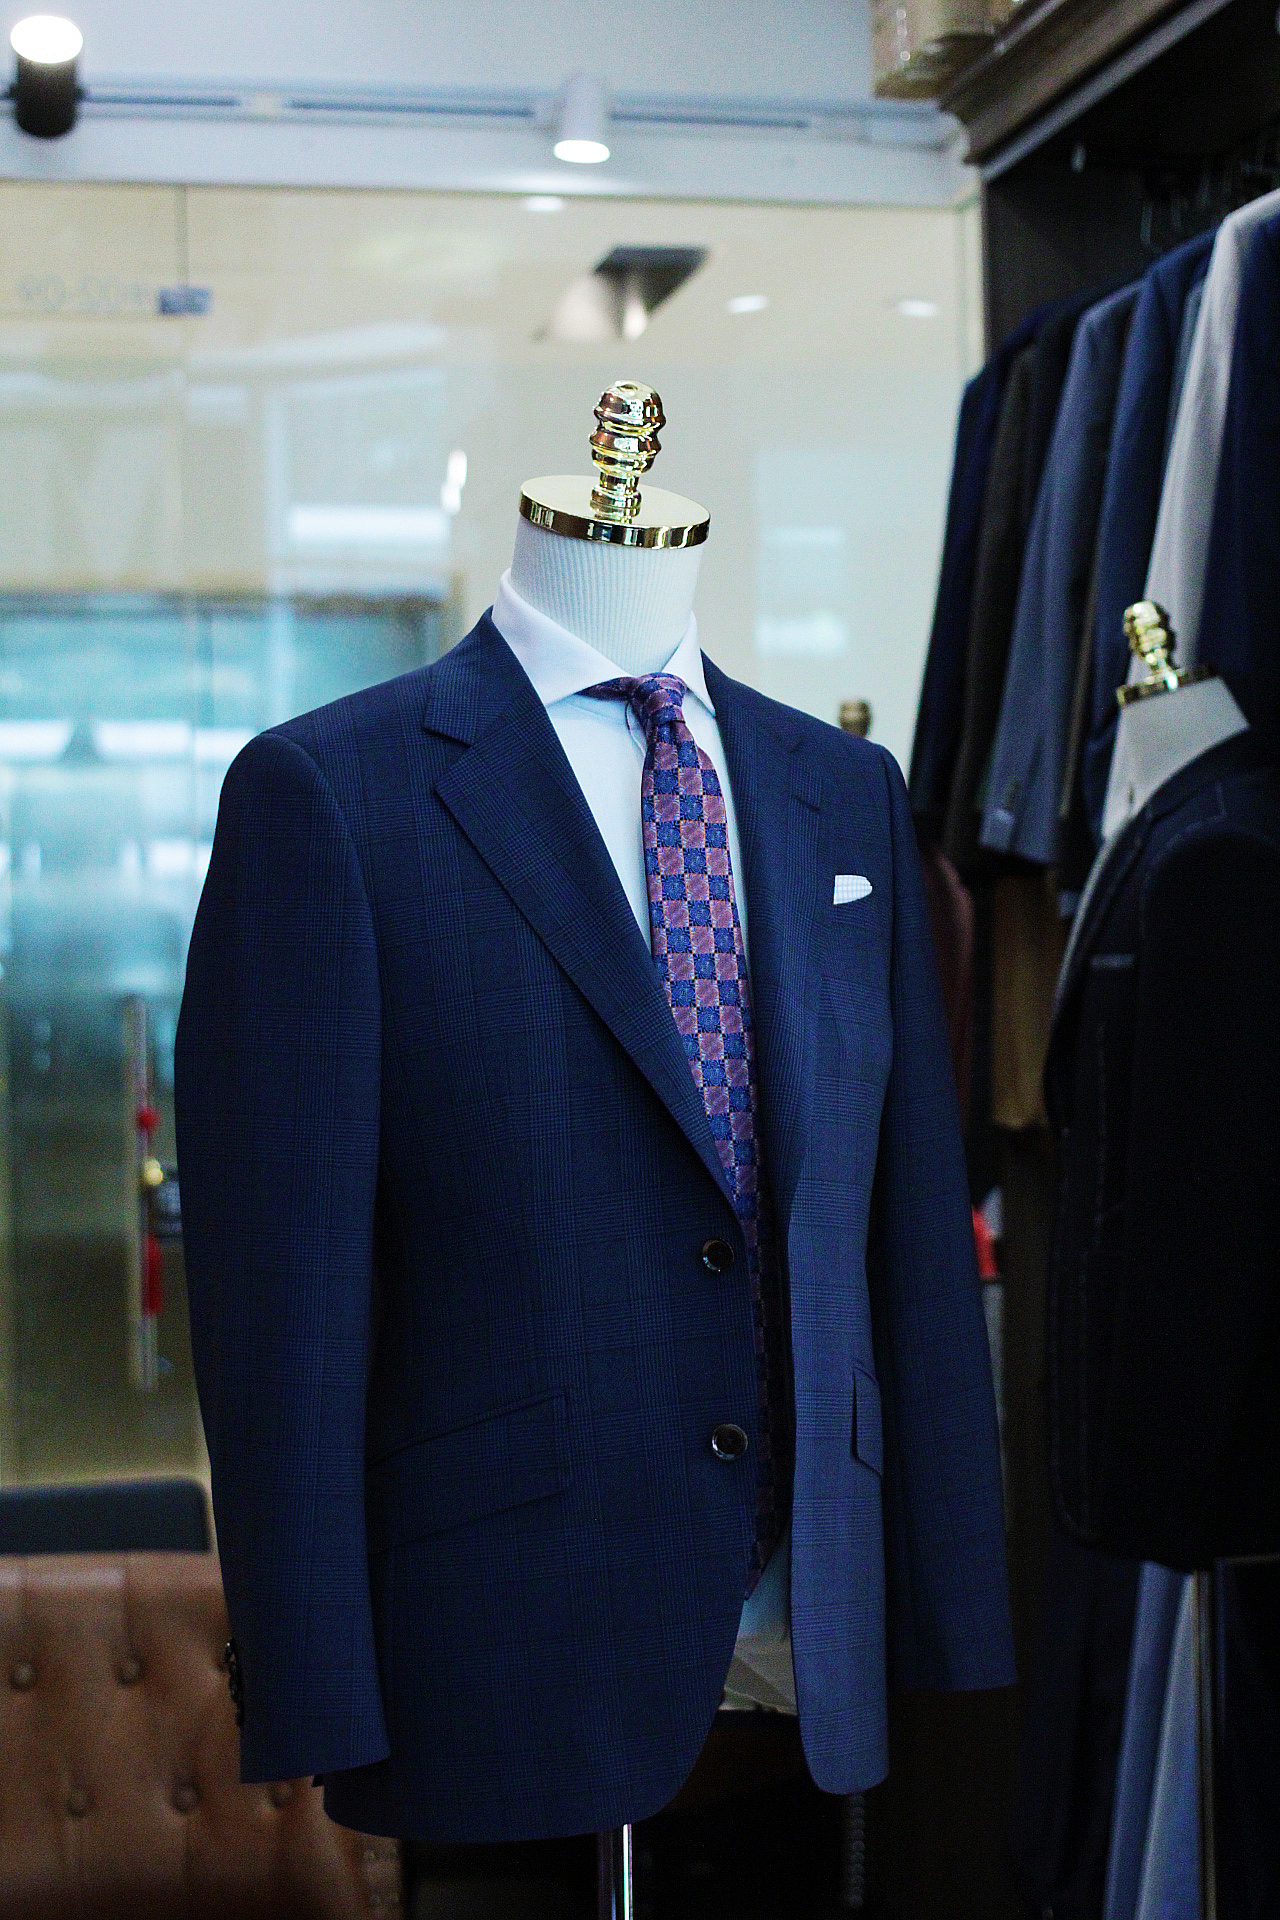 Lins | STYLBIELLA | Single Breasted Suit | Tailor Made Suits Singapore | Bespoke Suits Singapore | Made Suits side.JPG